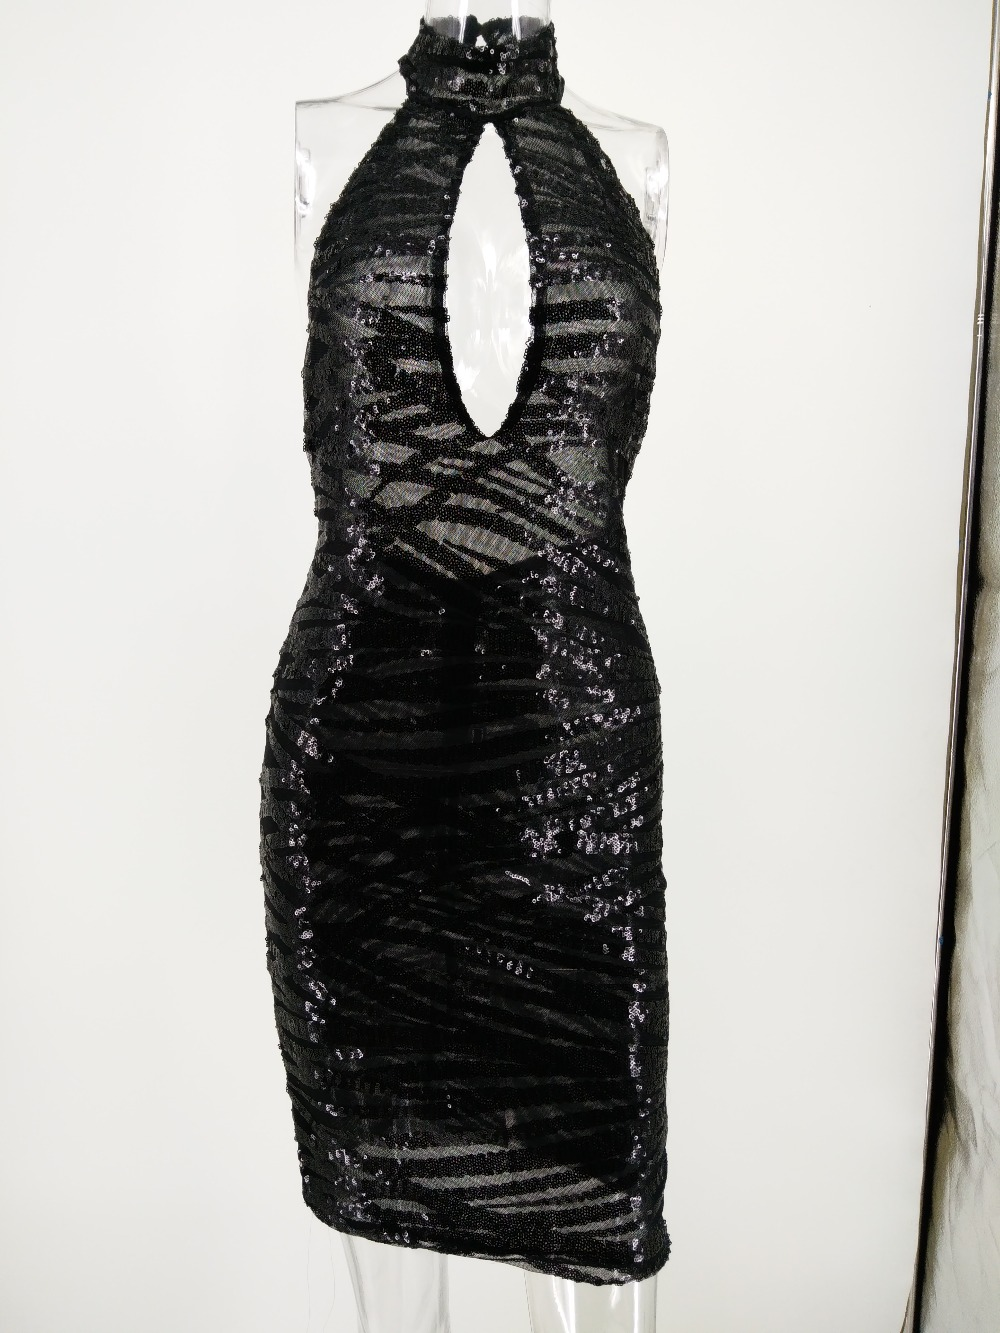 Sexy Night Club Wear Summer Sequins dress women Backless black bodycon Dress elegant robe femme vintage Party Dresses Vestidos in Dresses from Women 39 s Clothing